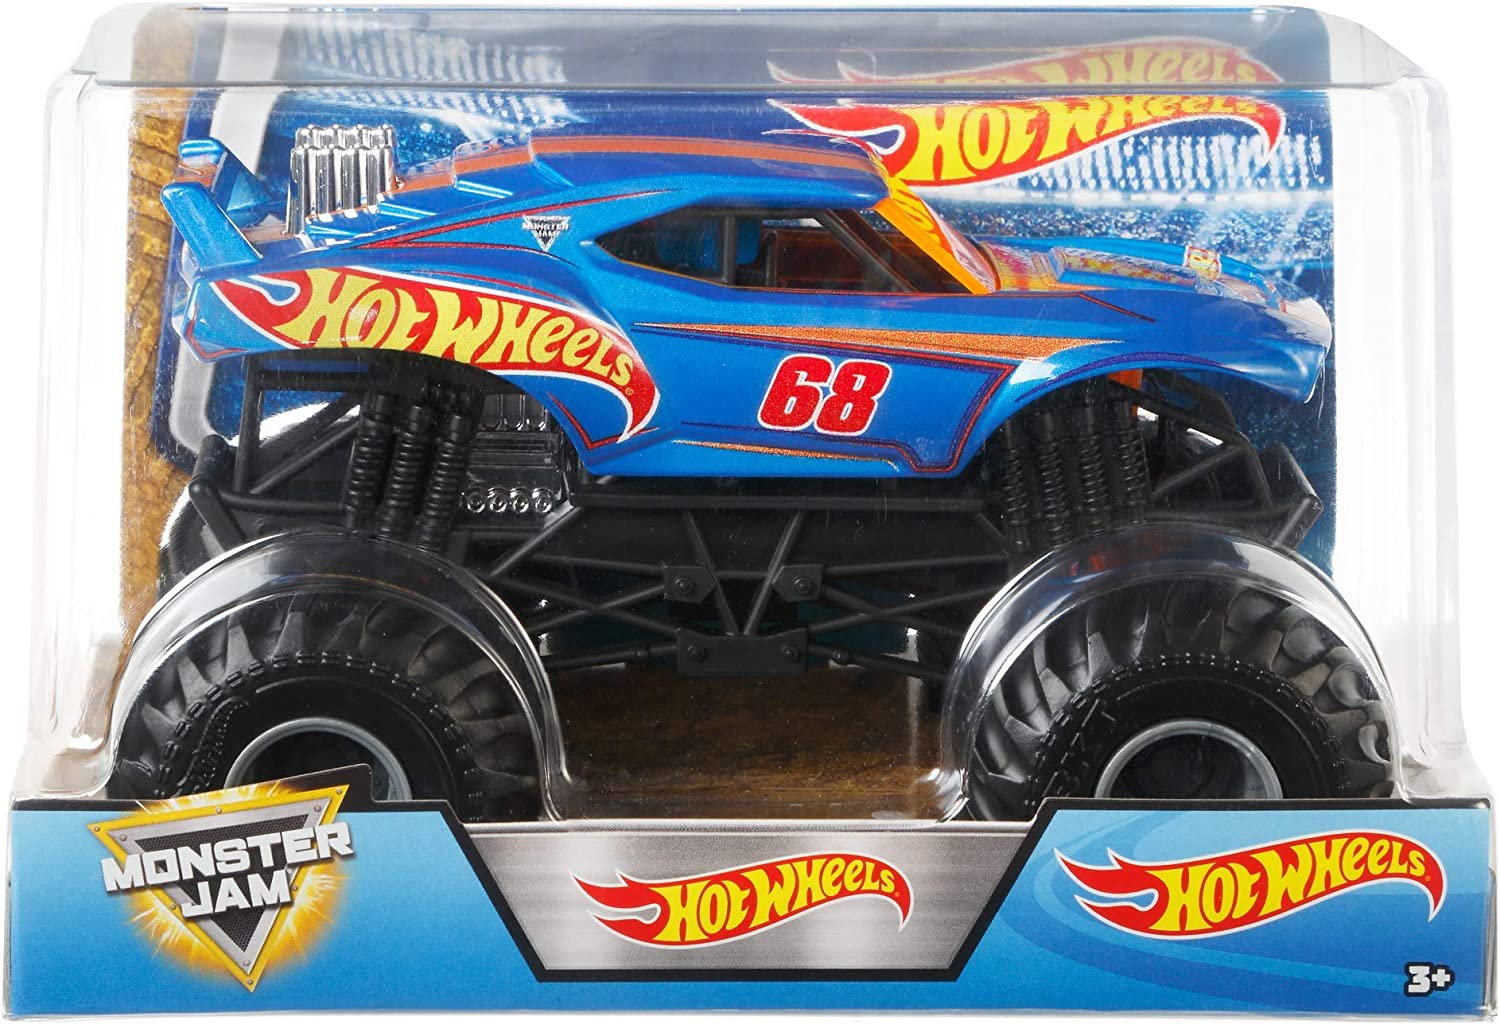 Amazon Com Hot Wheels Monster Jam Truck 1 24 Scale Toy Toys Games